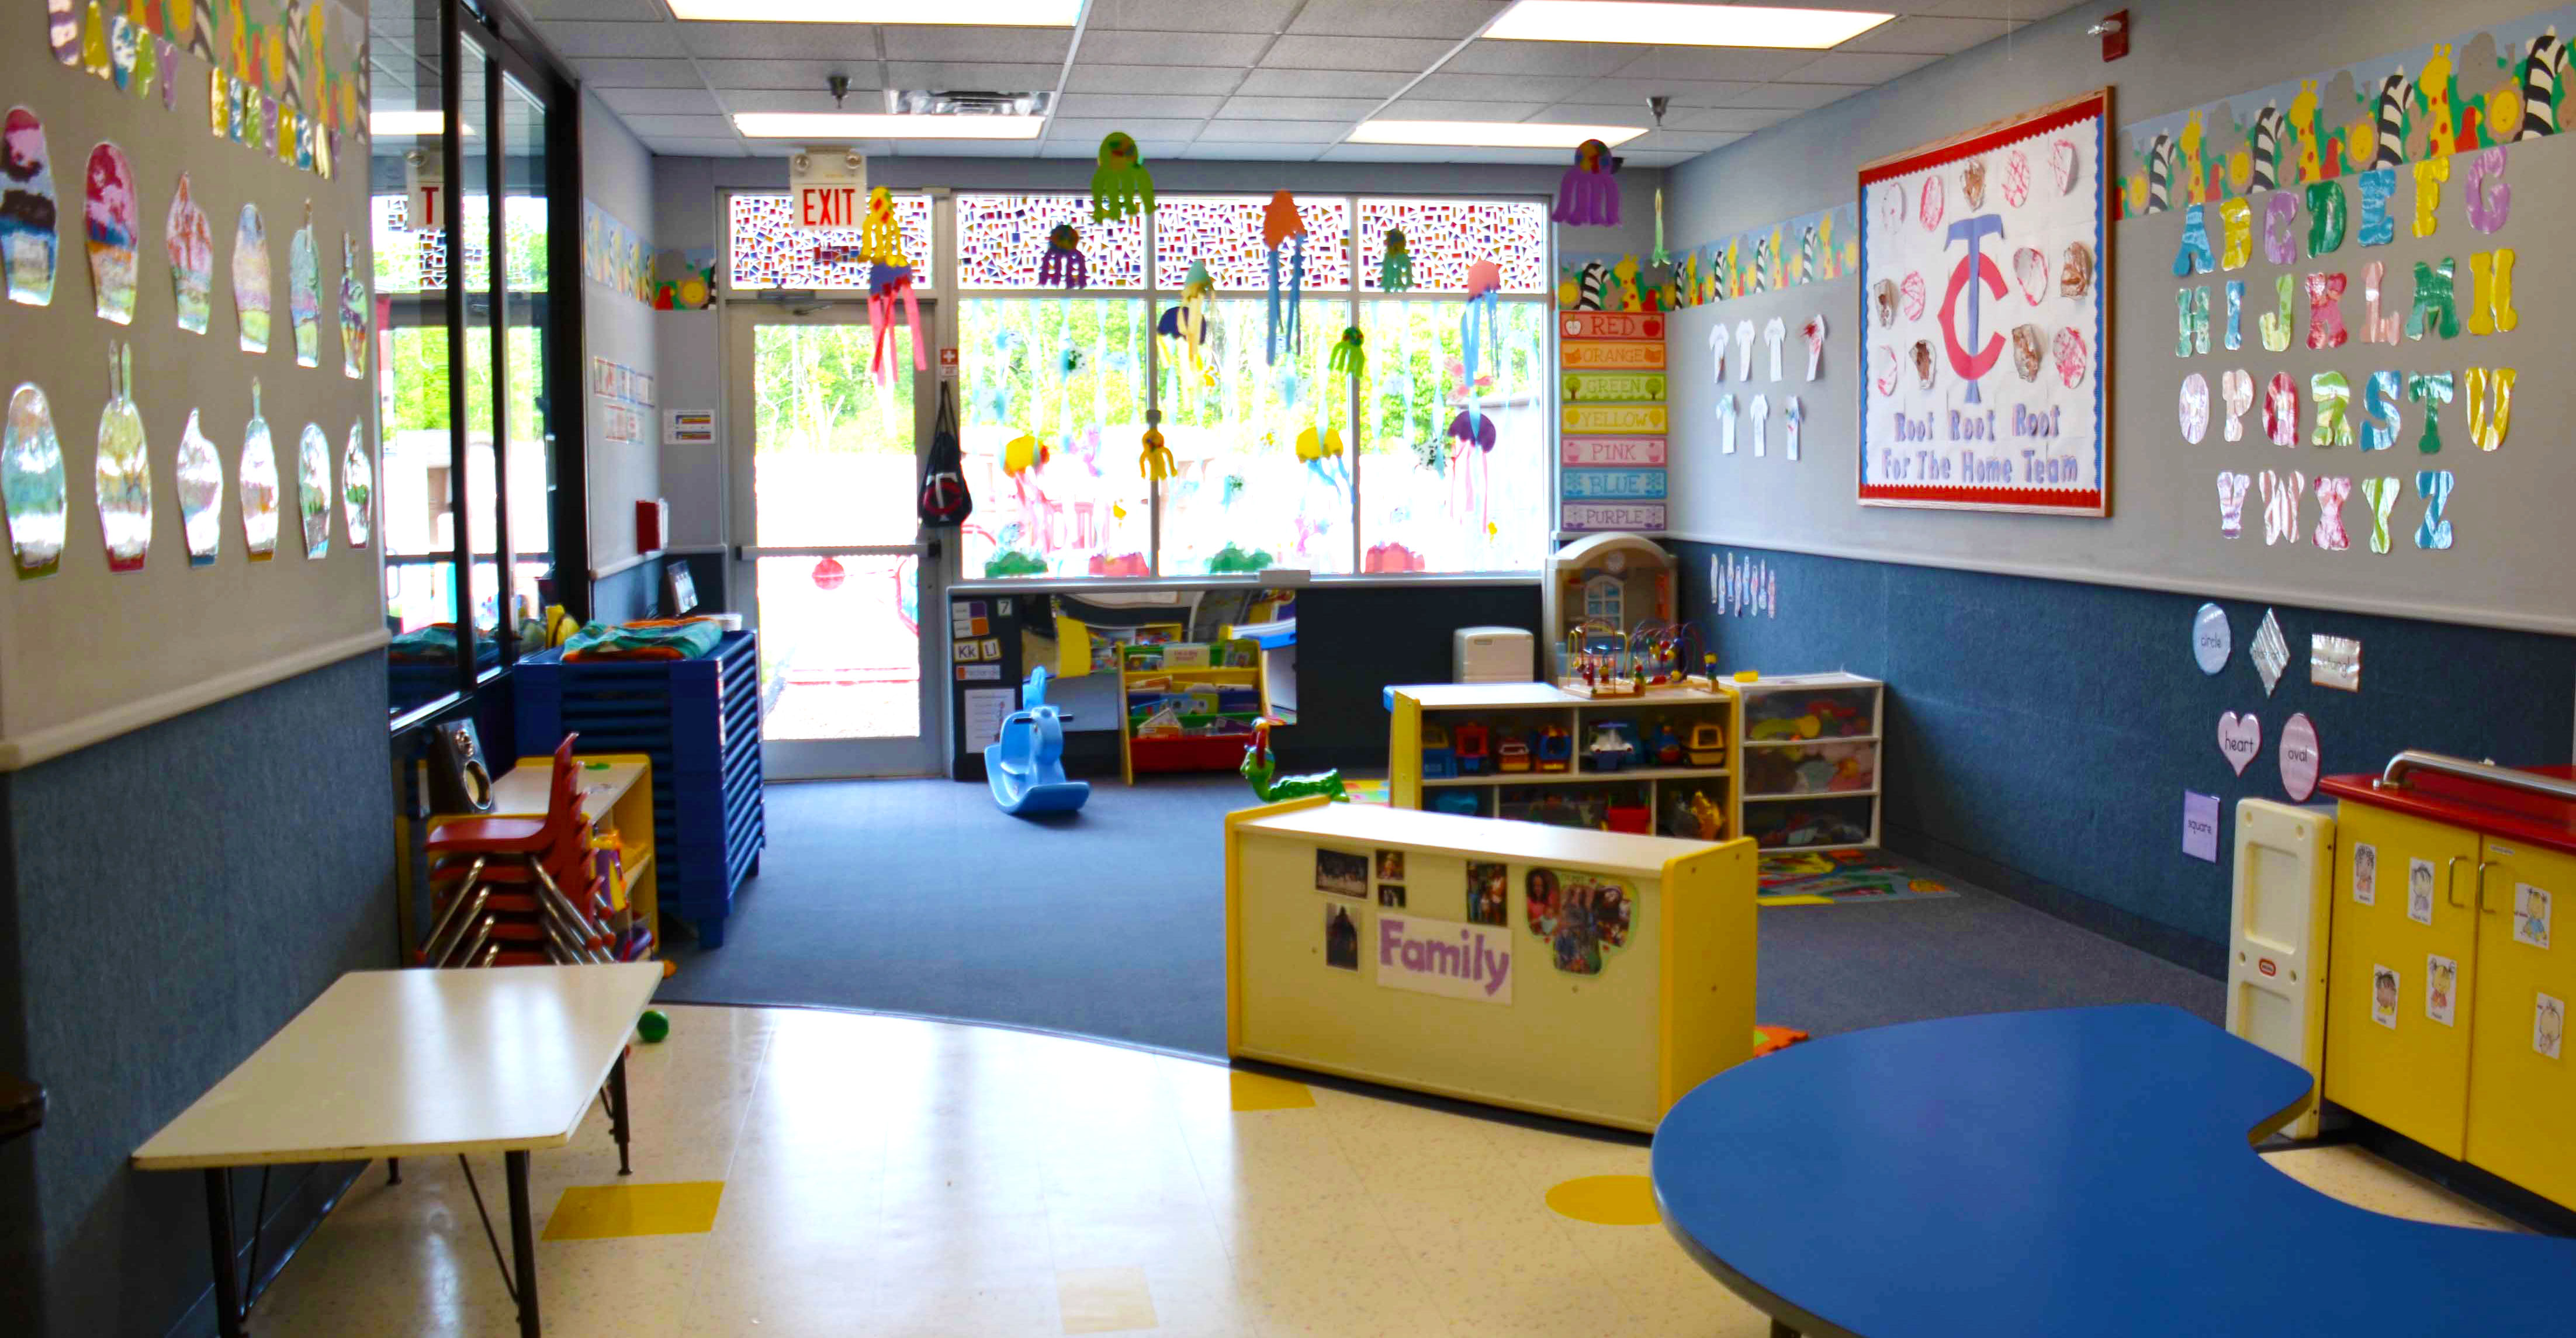 Dawn Of Discovery Childcare Center Daycare For Infants